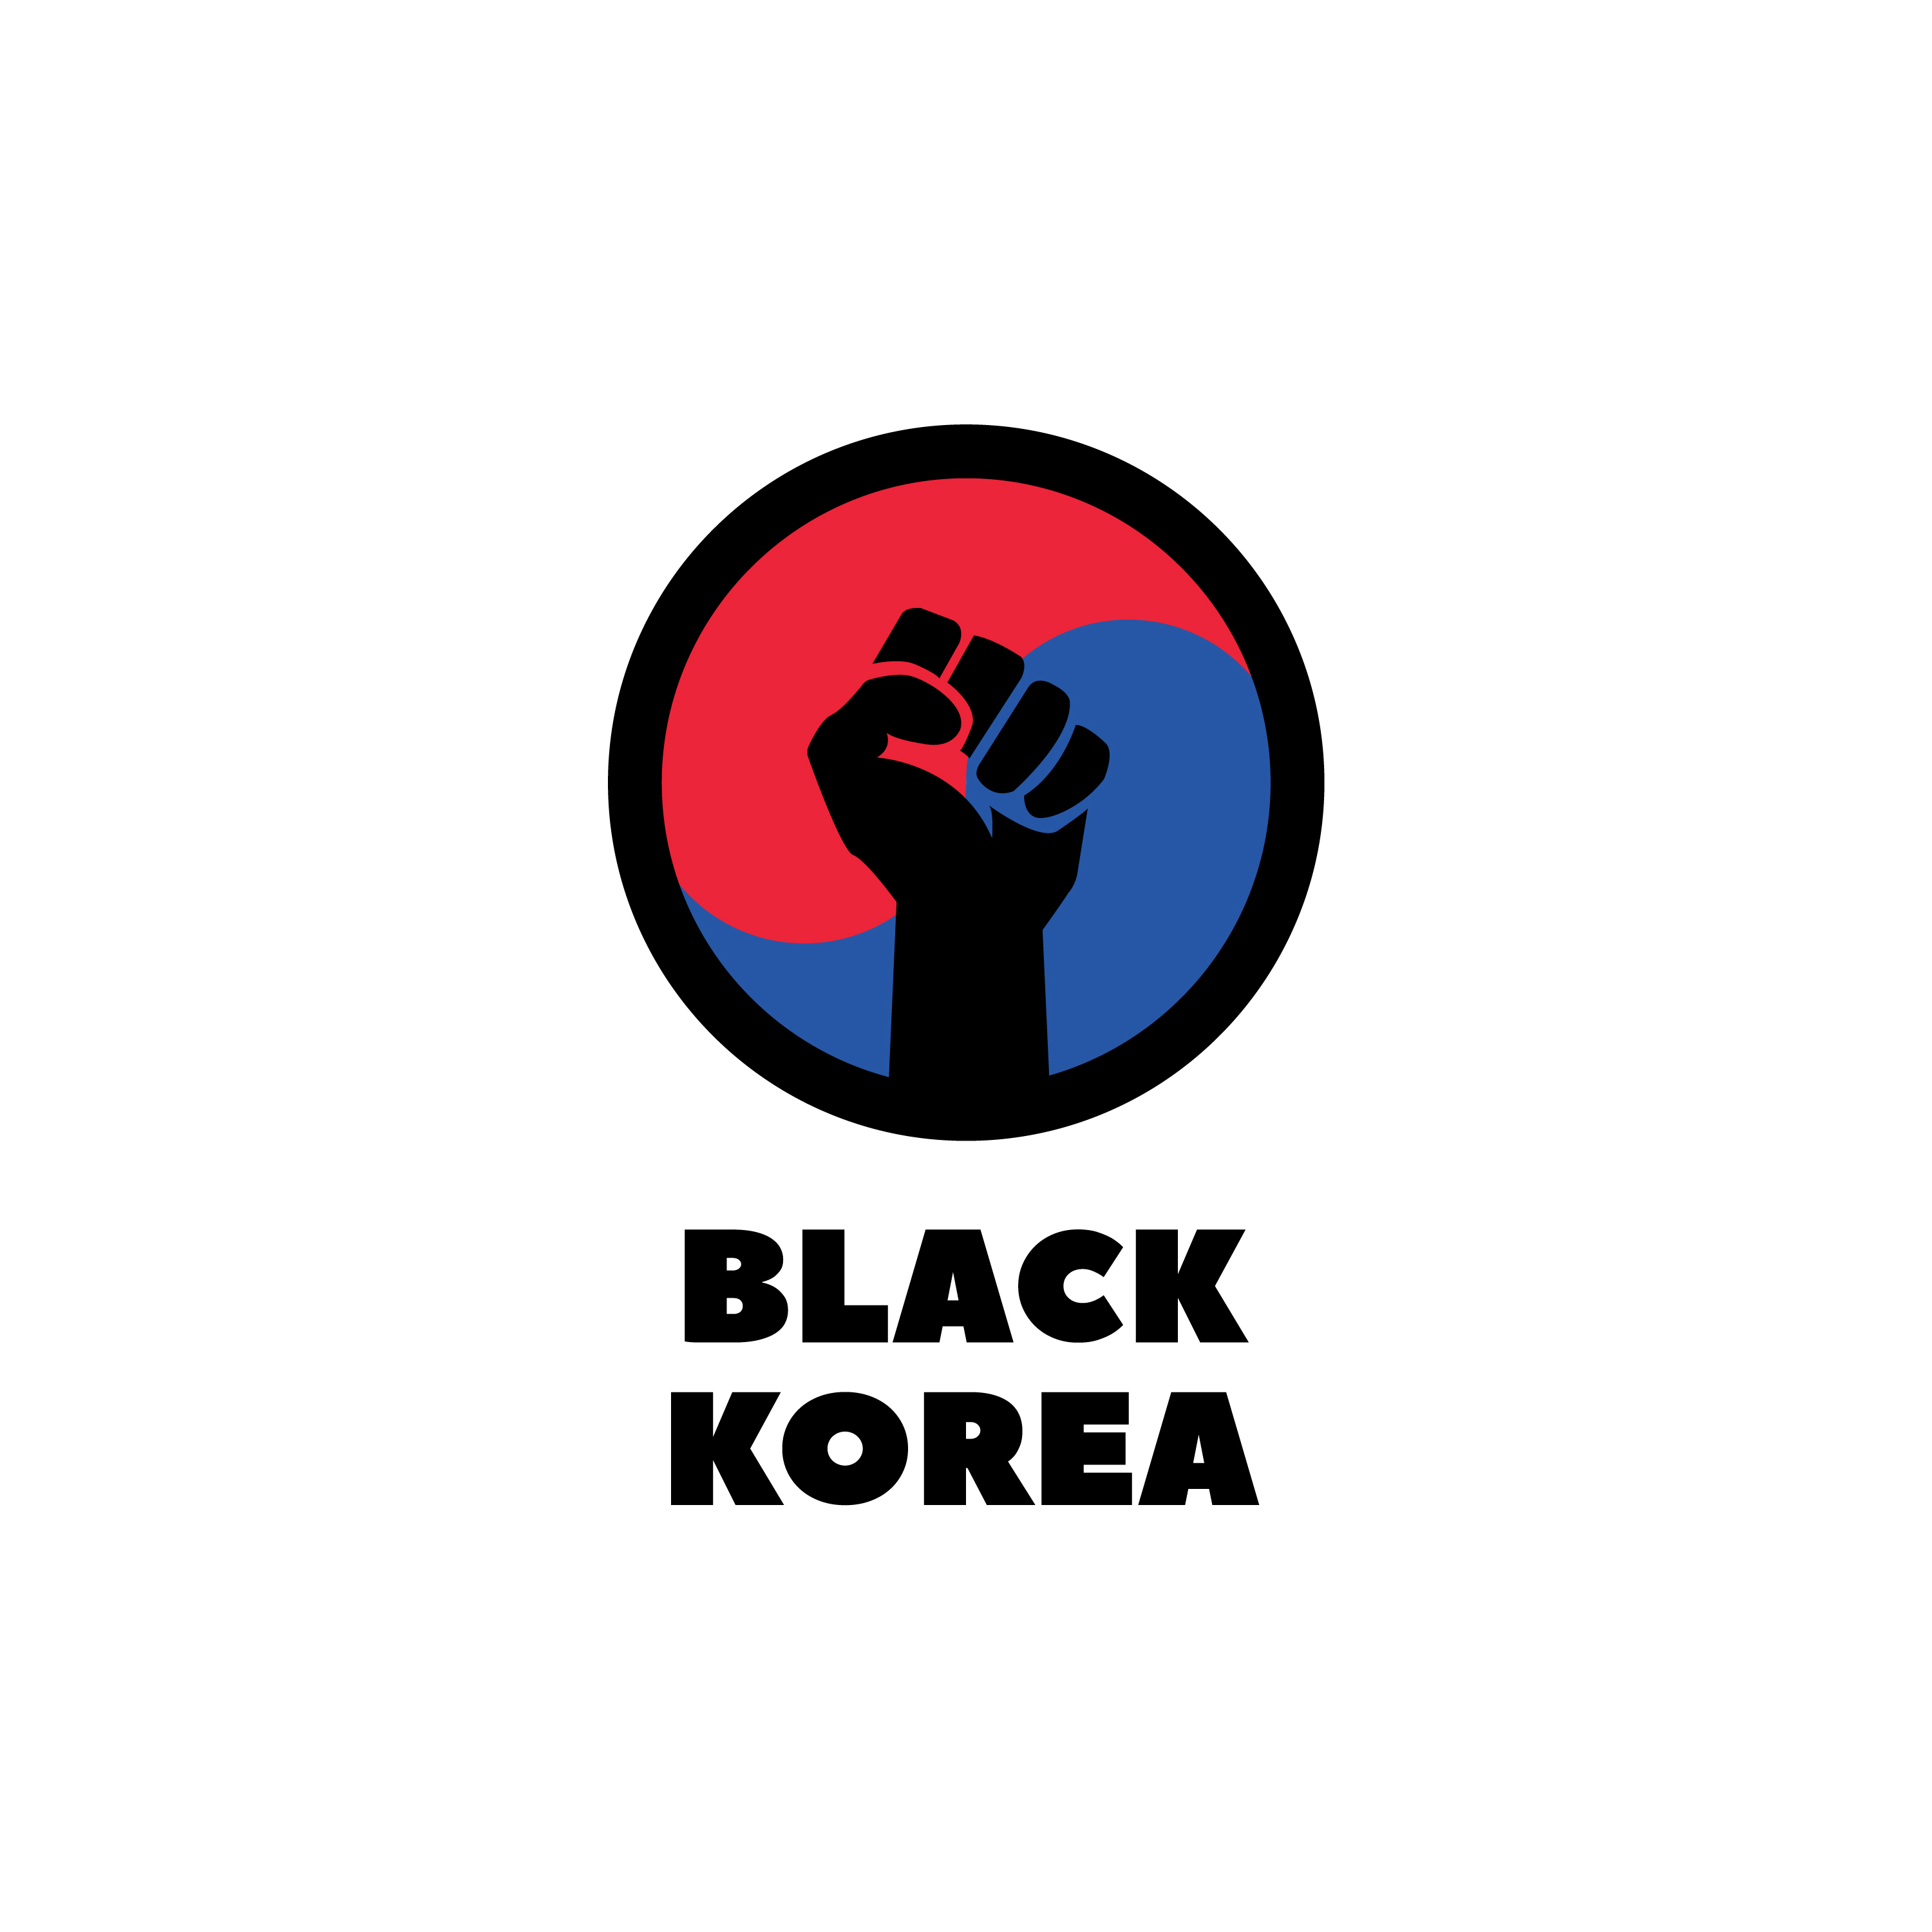 Black Korea